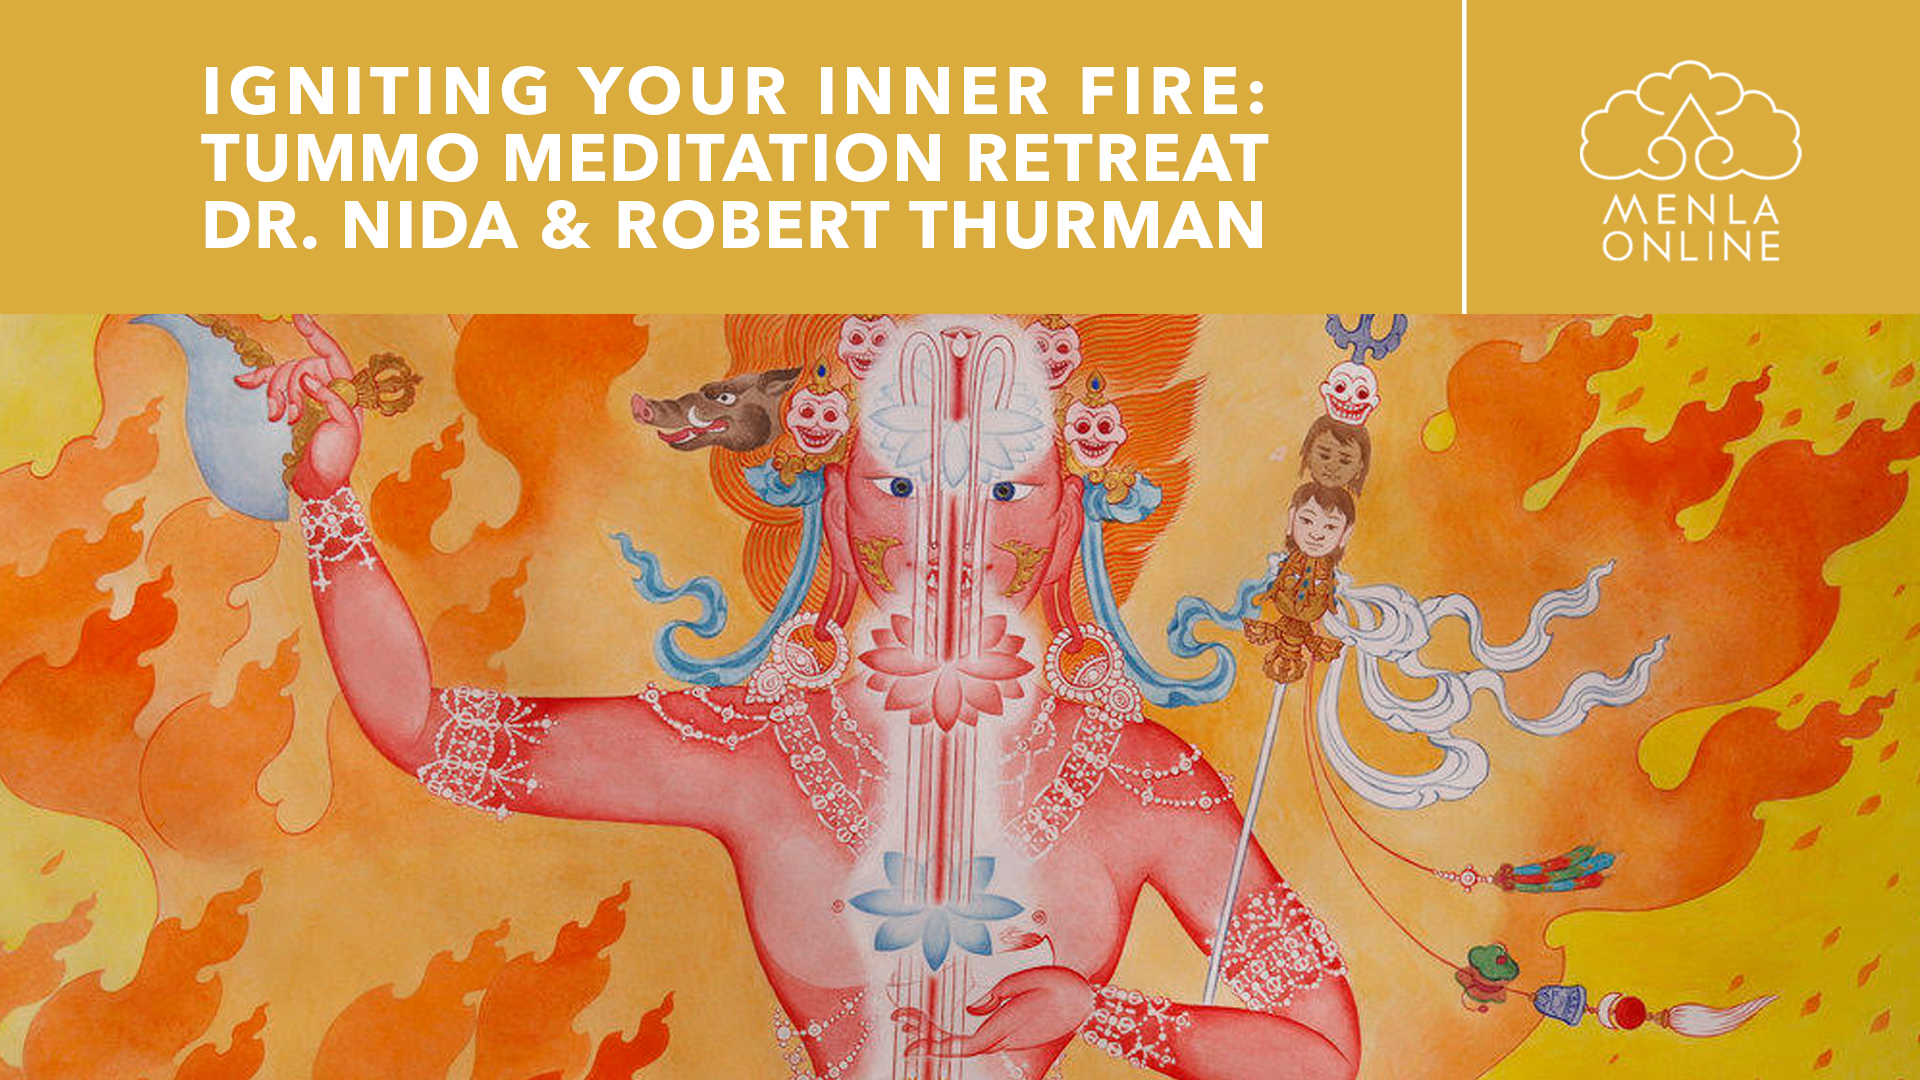 Igniting Your Inner Fire: Tummo Meditation Retreat @ Tibet House US | Menla Online